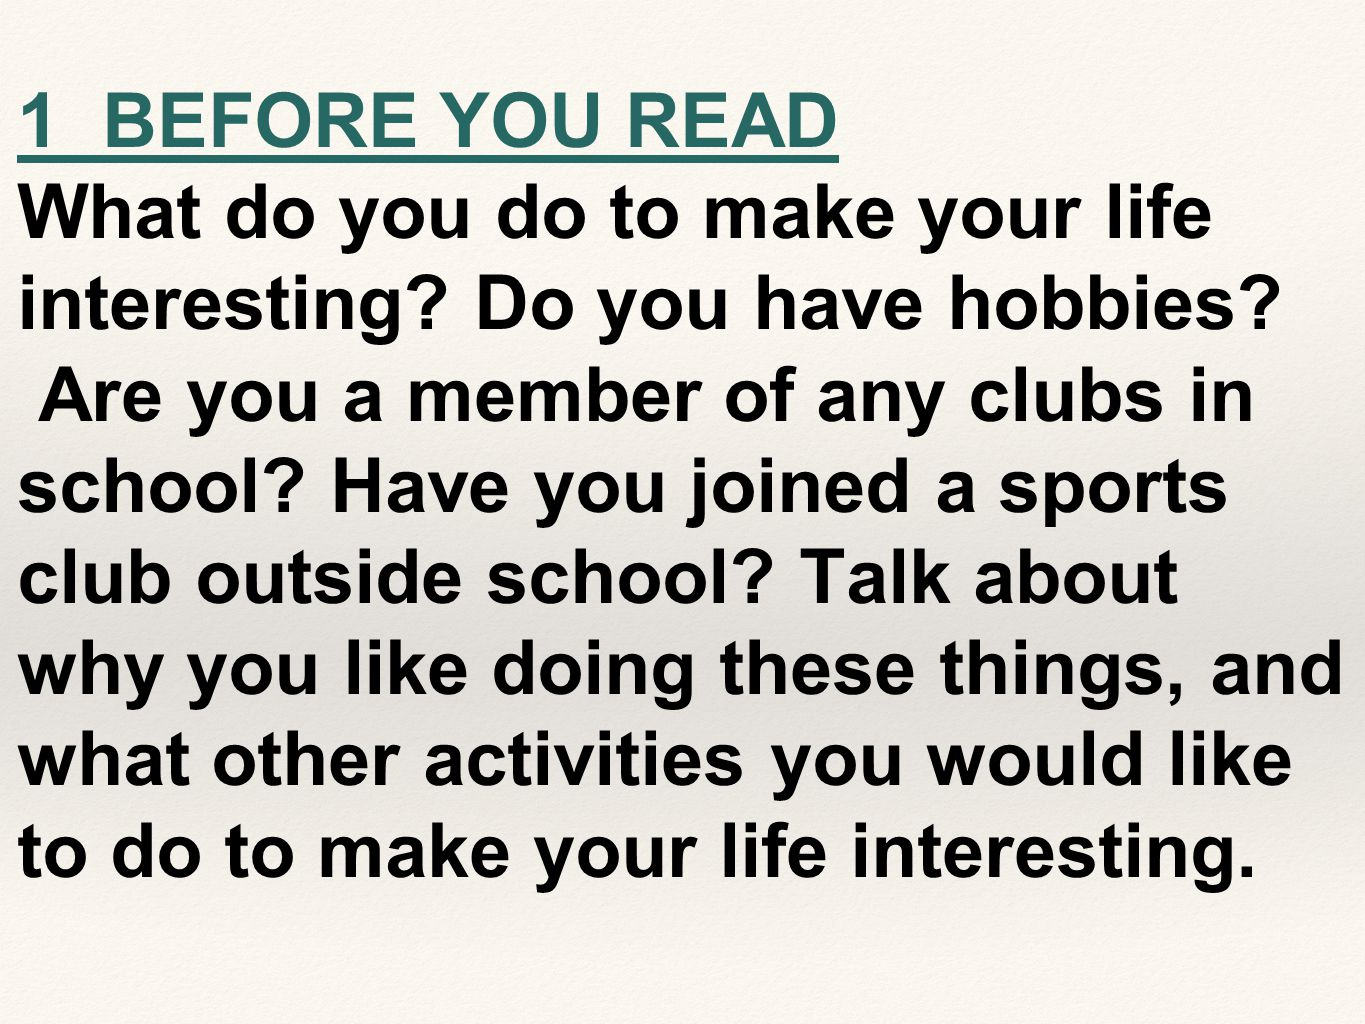 1 BEFORE YOU READ What do you do to make your life interesting? Do you have hobbies? Are you a member of any clubs in school? Have you joined a sports